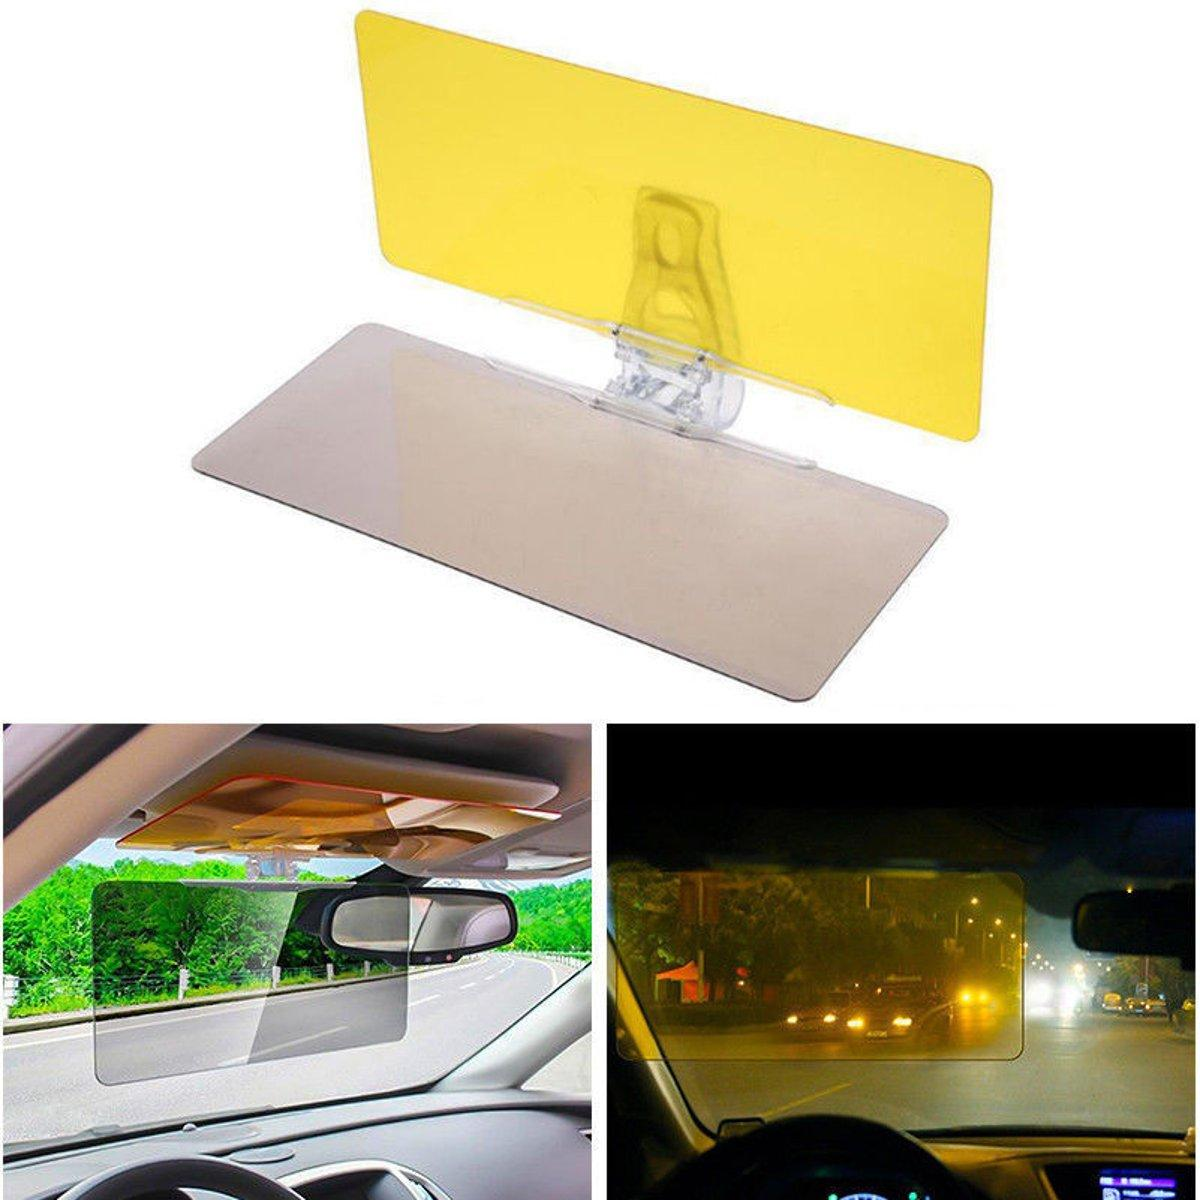 hd transparent windshield car sun visor day night vision anti-glare goggle  anti-dazzle mirror Sale - Banggood.com sold out 4f6bca97966